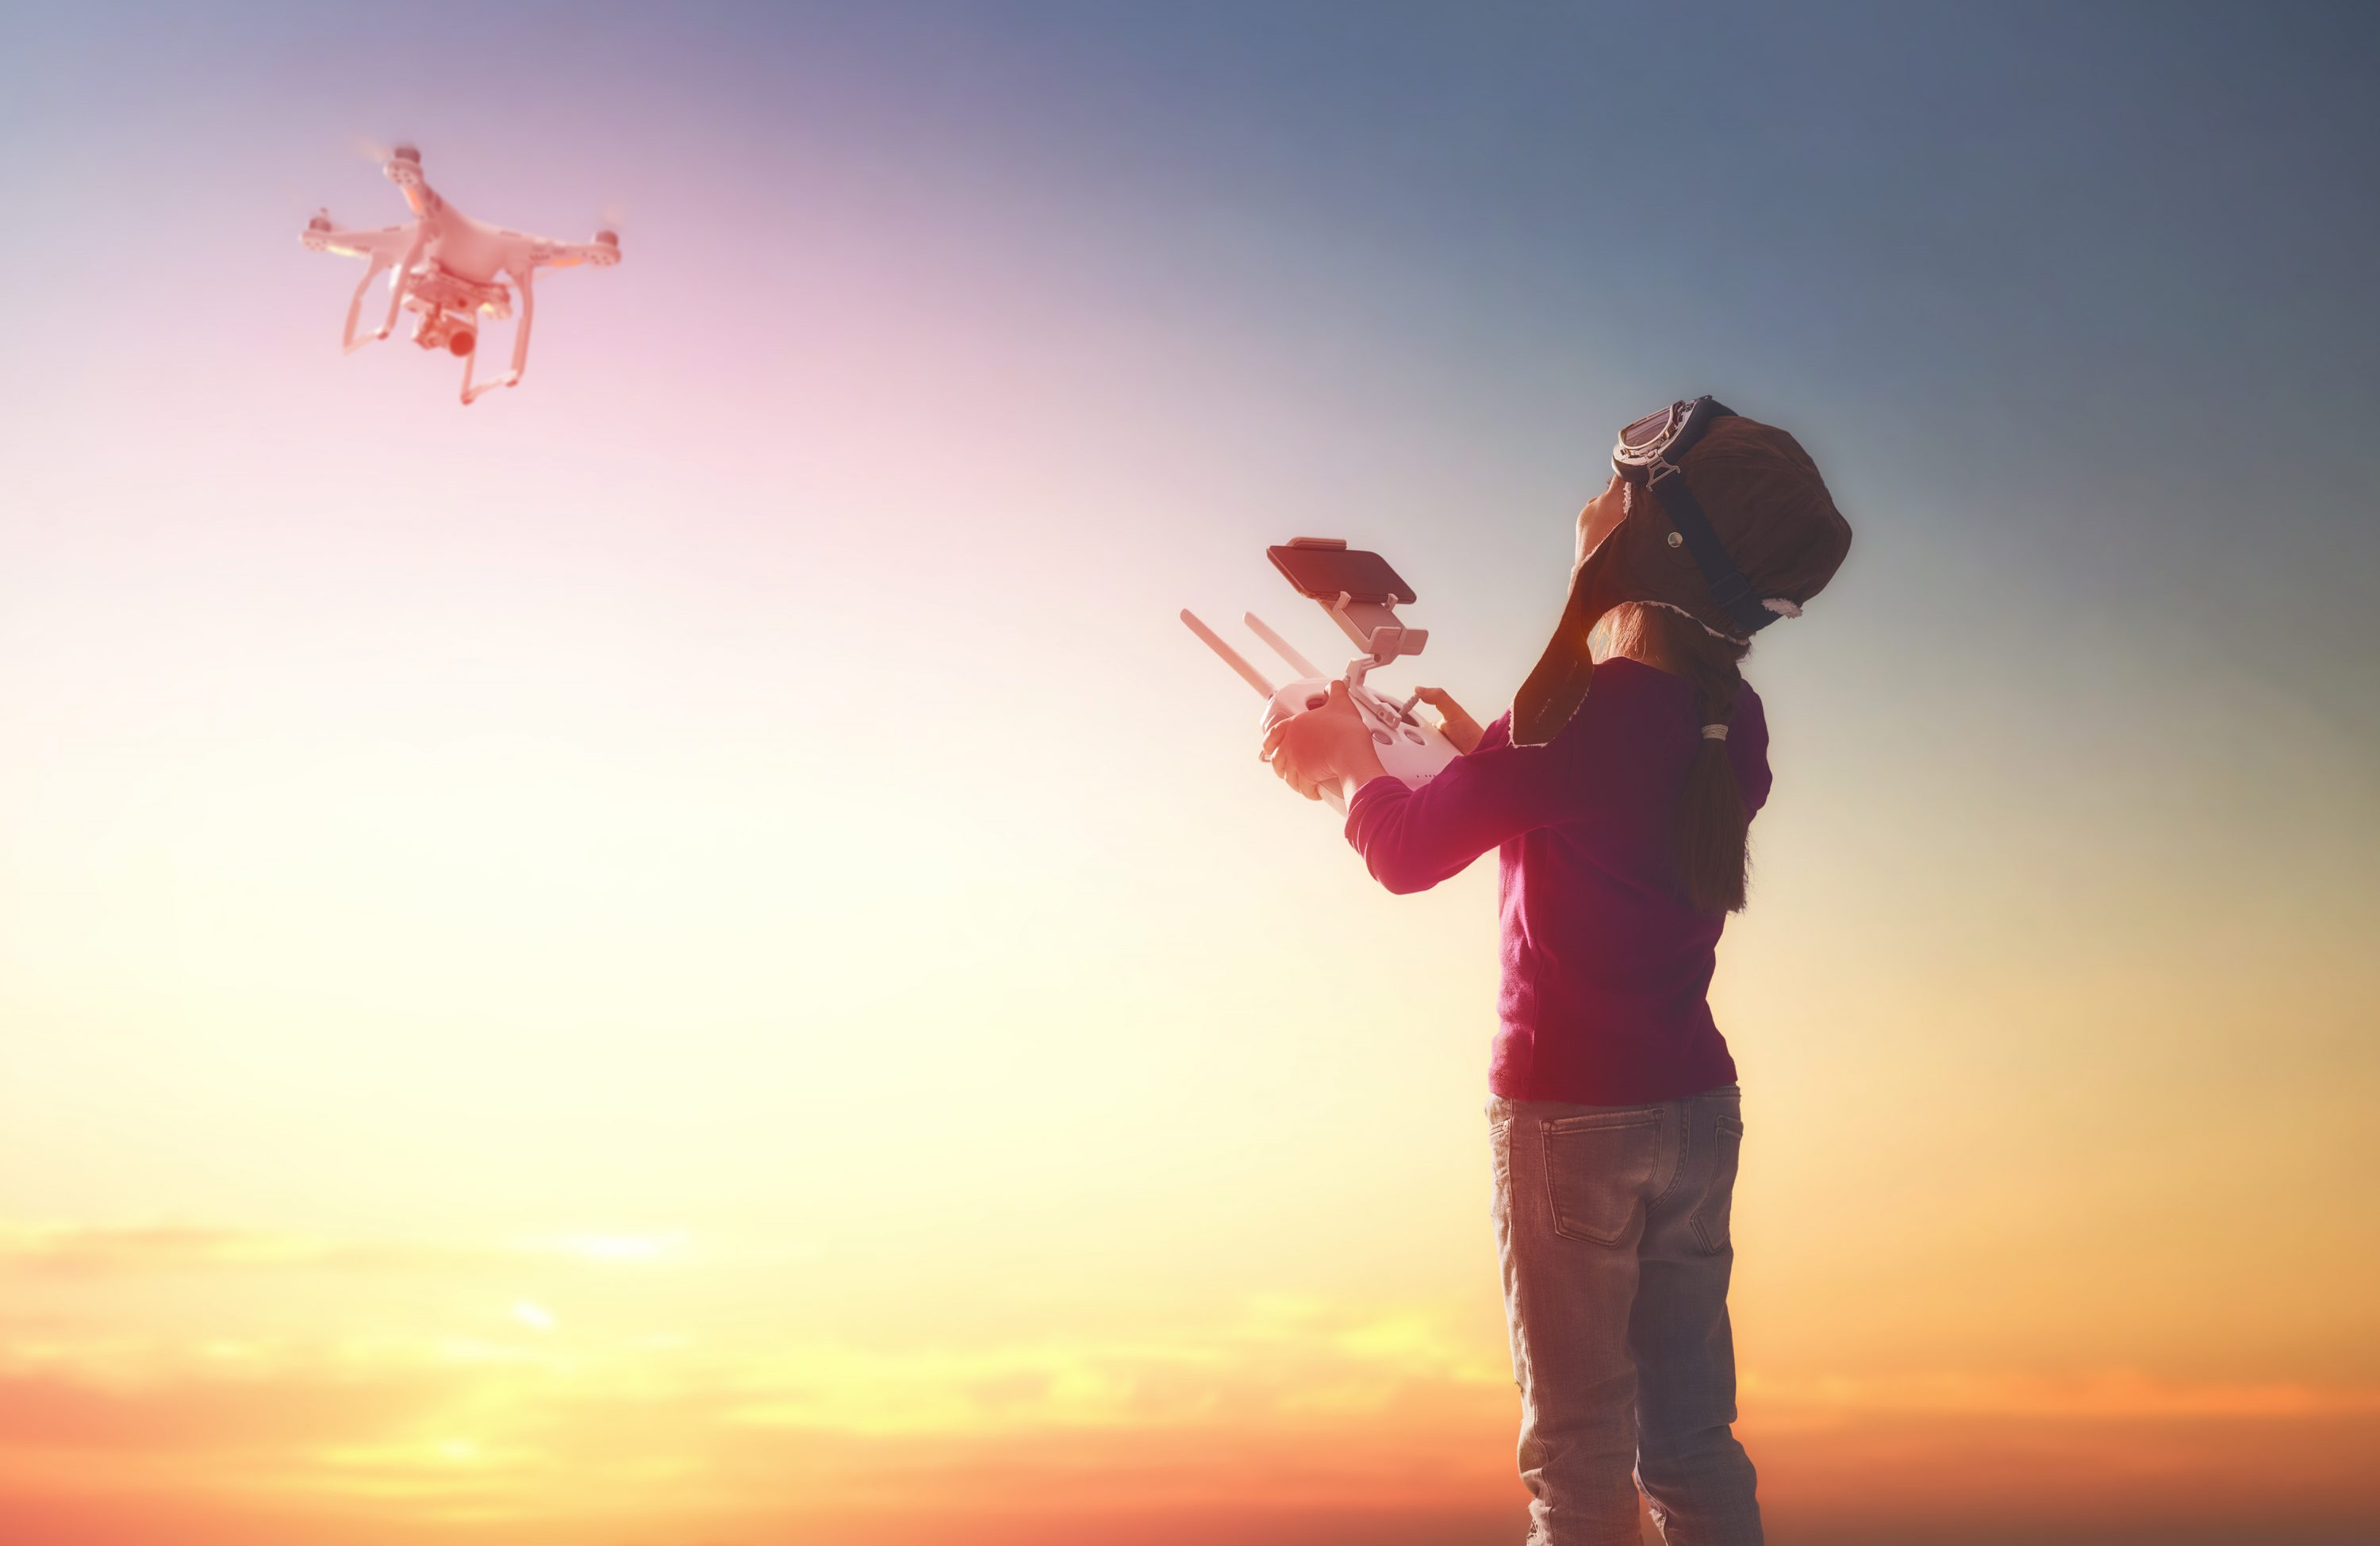 Can kids use drones?